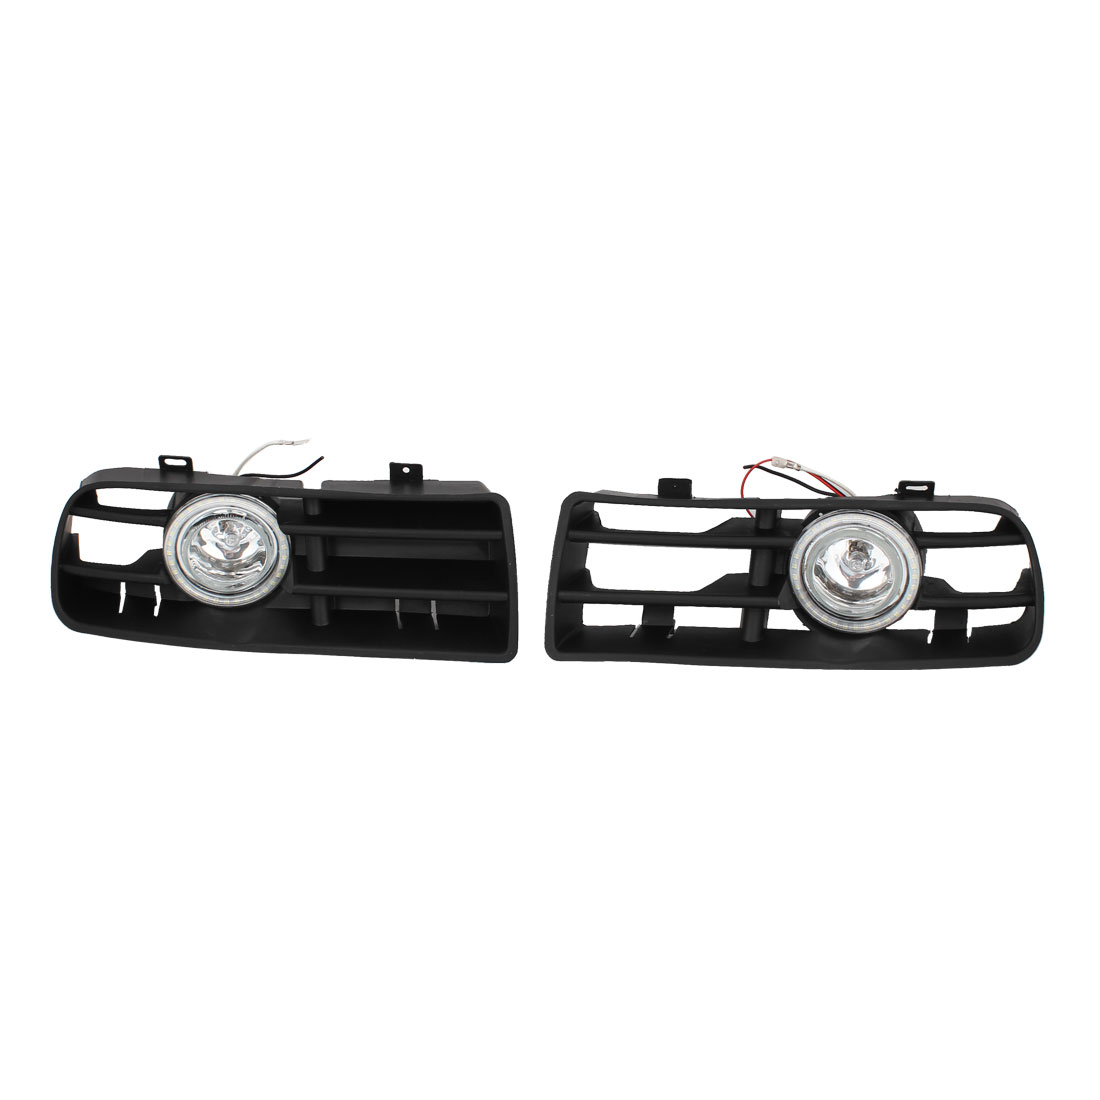 2 Pcs Driving Projector White Front Fog Light Lamps Grille for VW GOLF